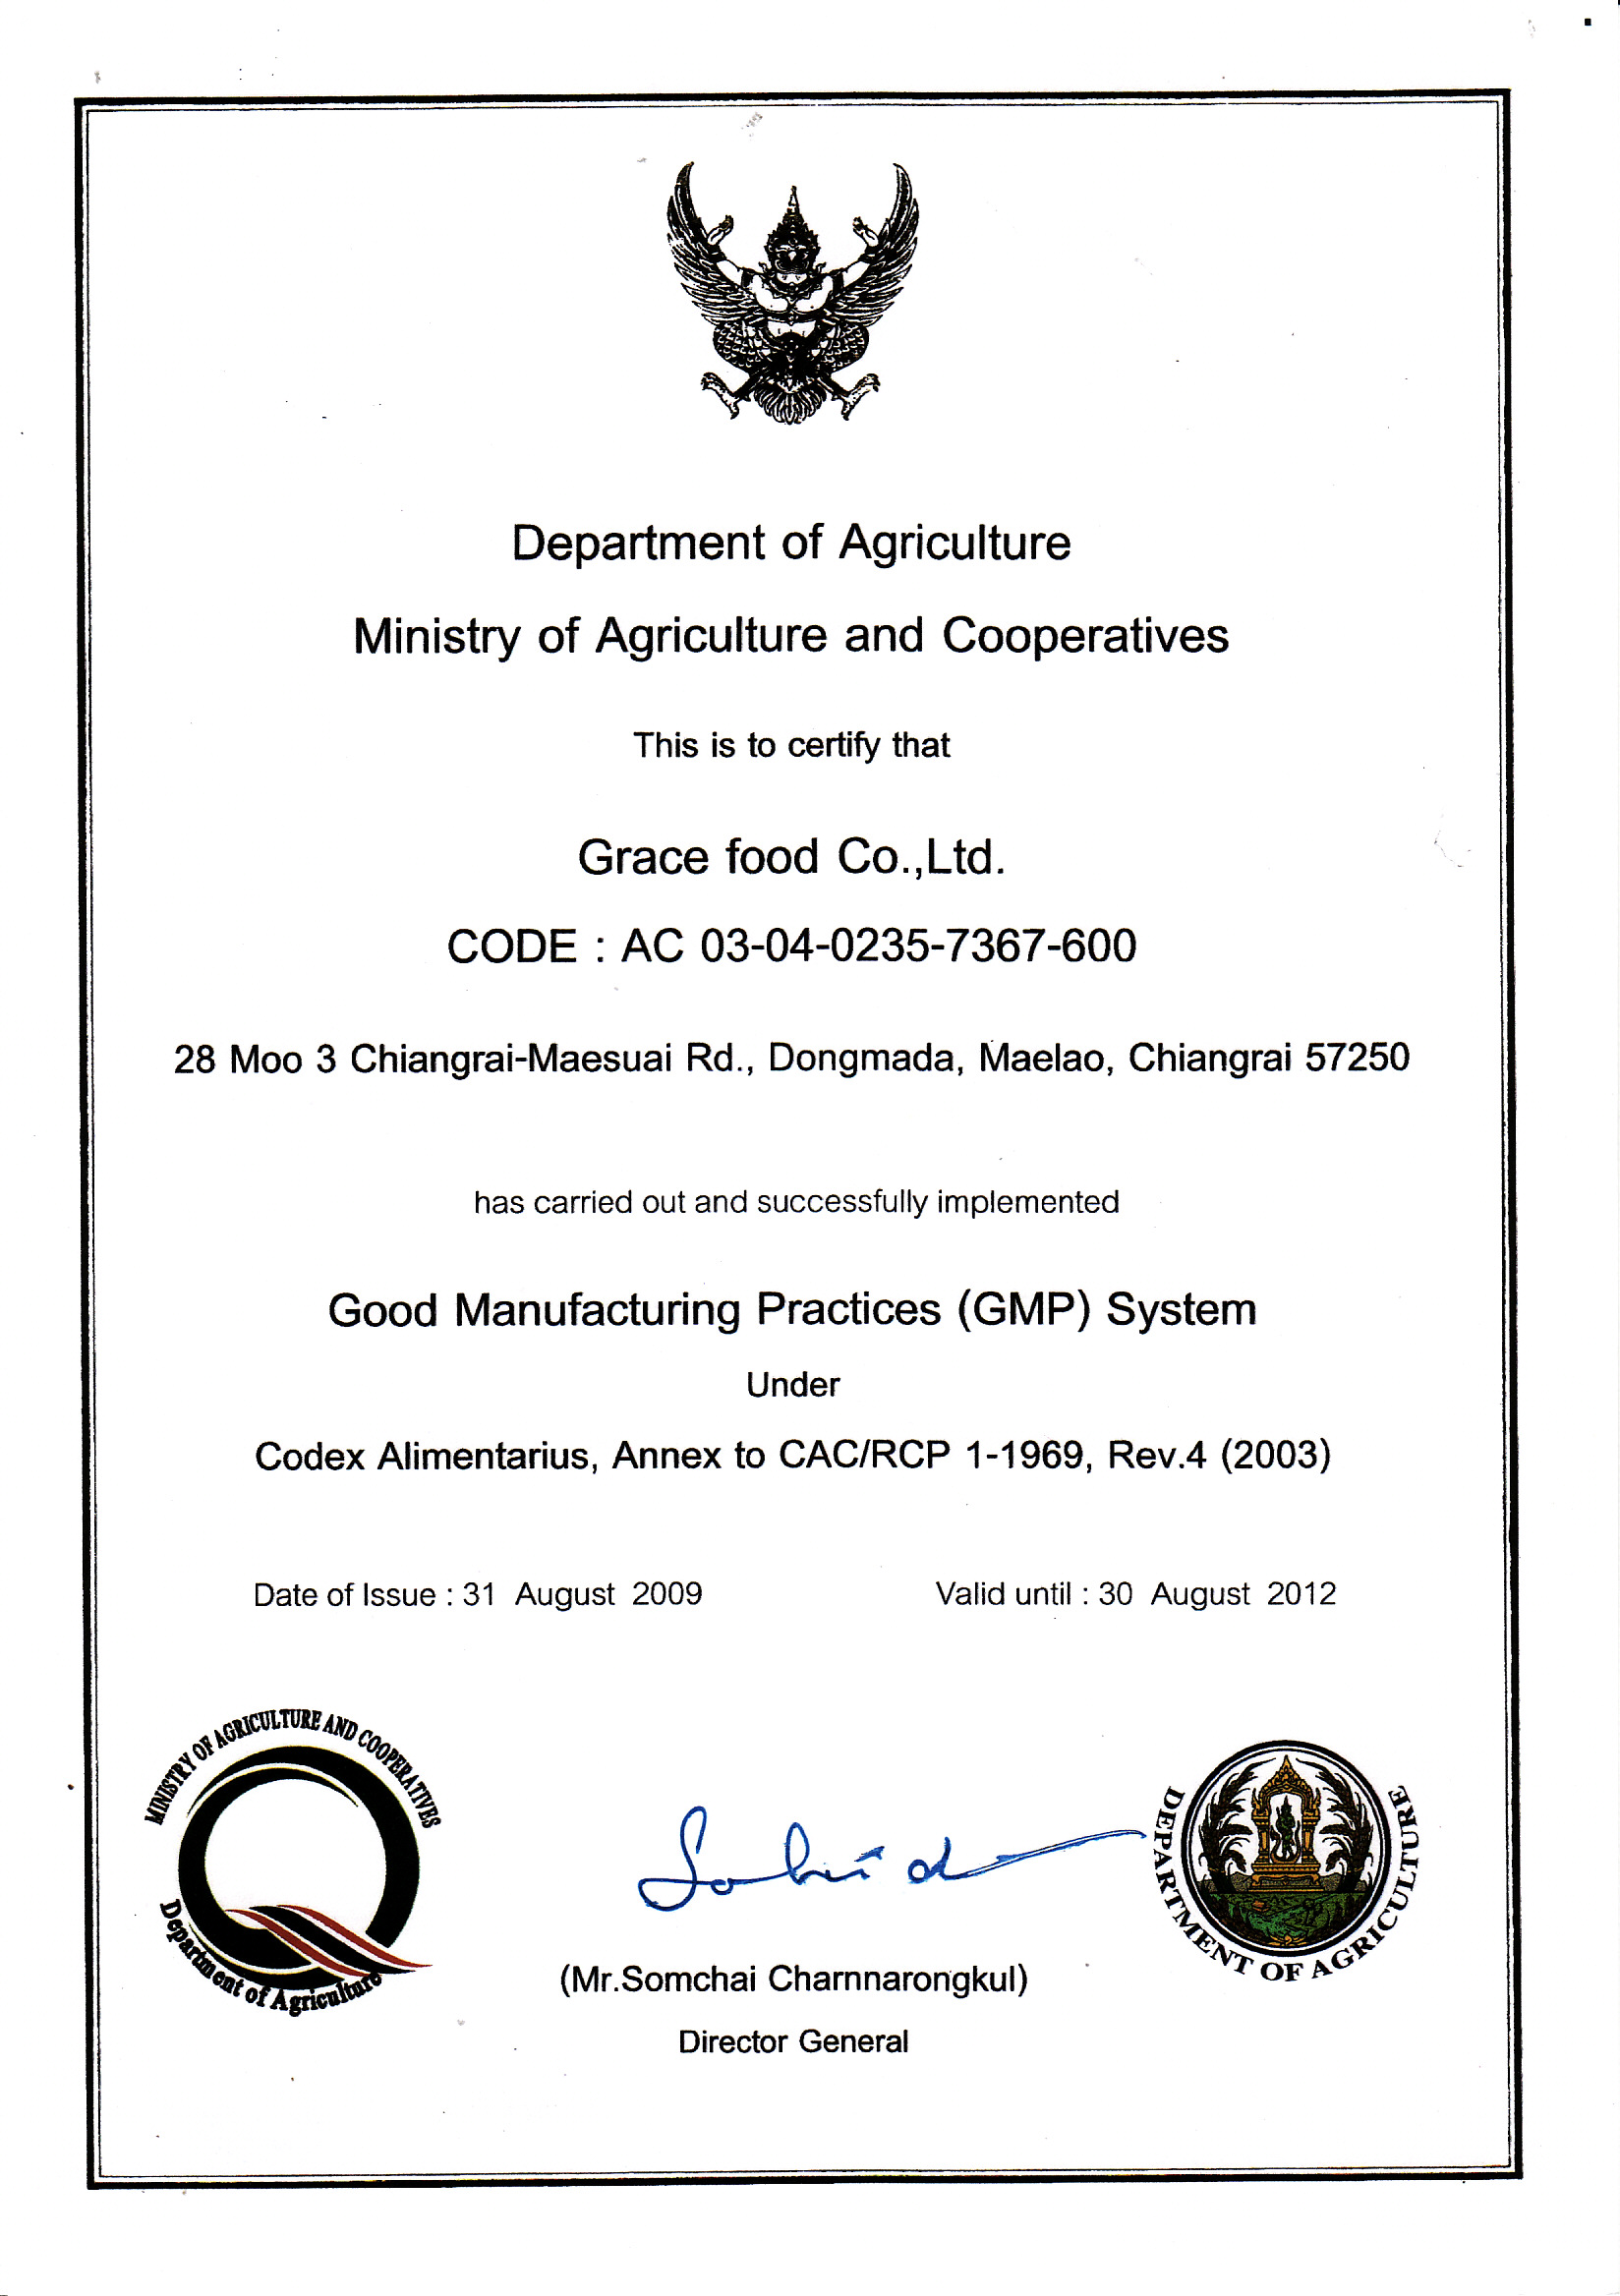 Grace Food Company Limited Gmp Certificate